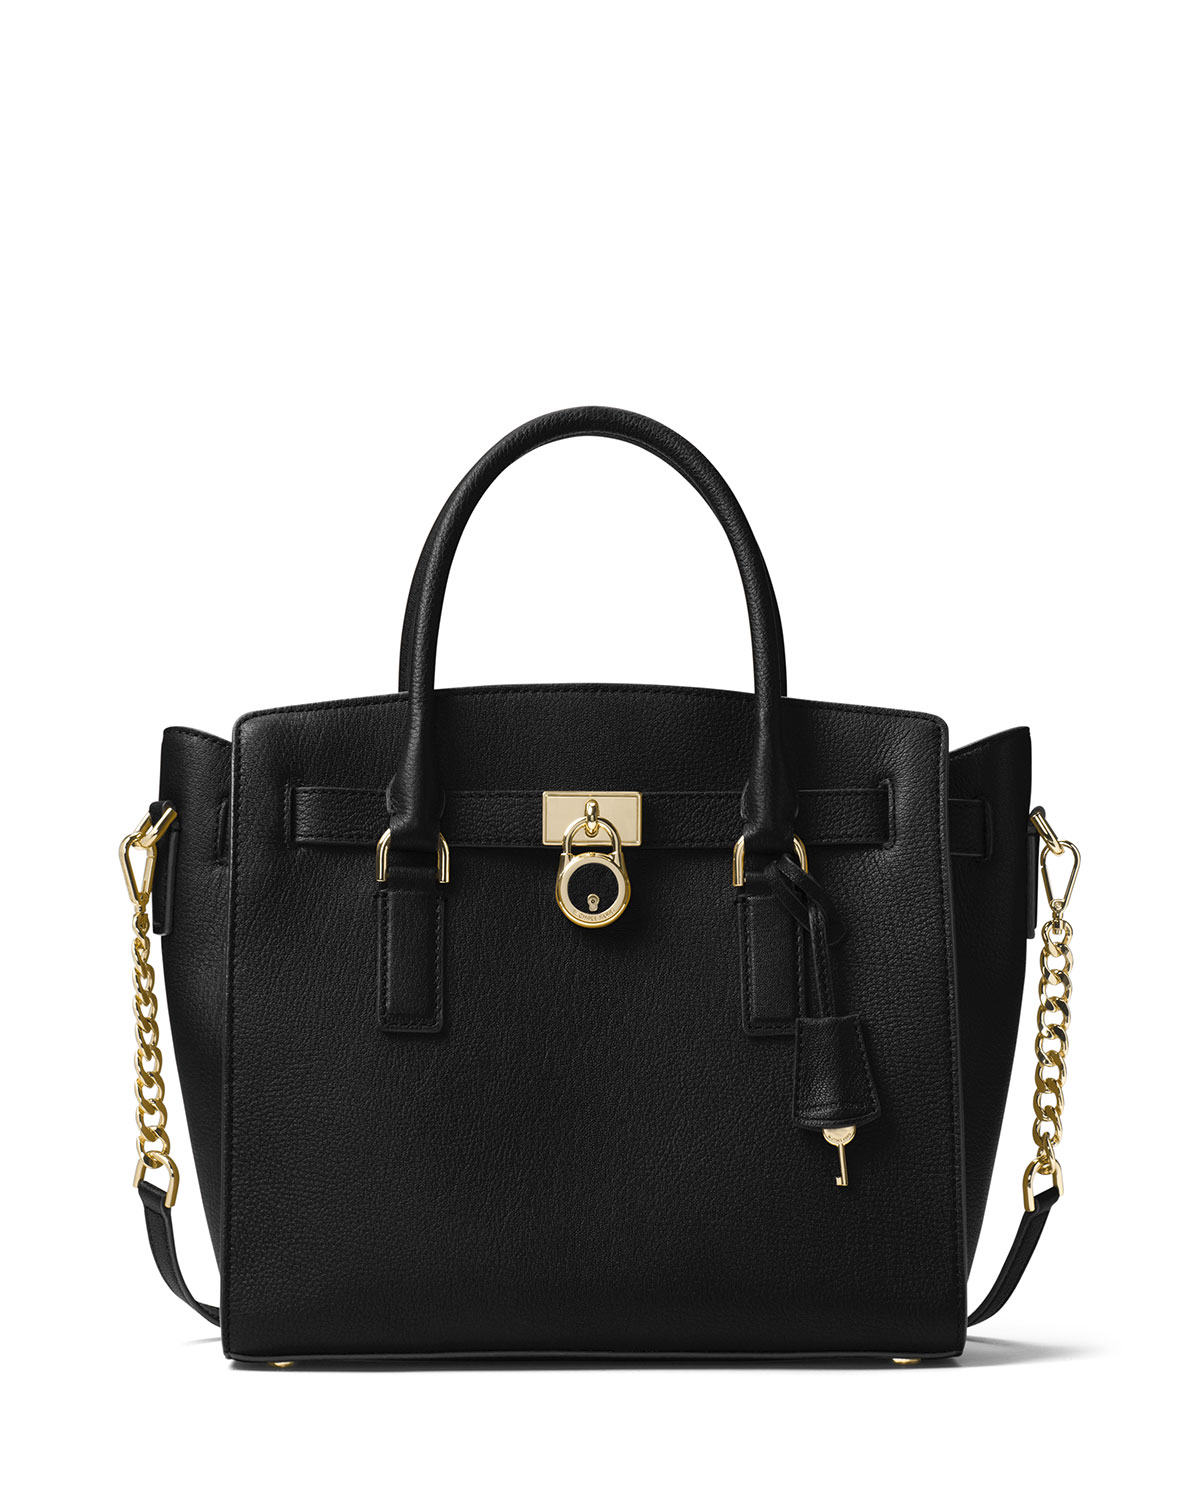 43a0d6f055e9 MICHAEL Michael Kors Hamilton Large East-West Leather Satchel Bag ...